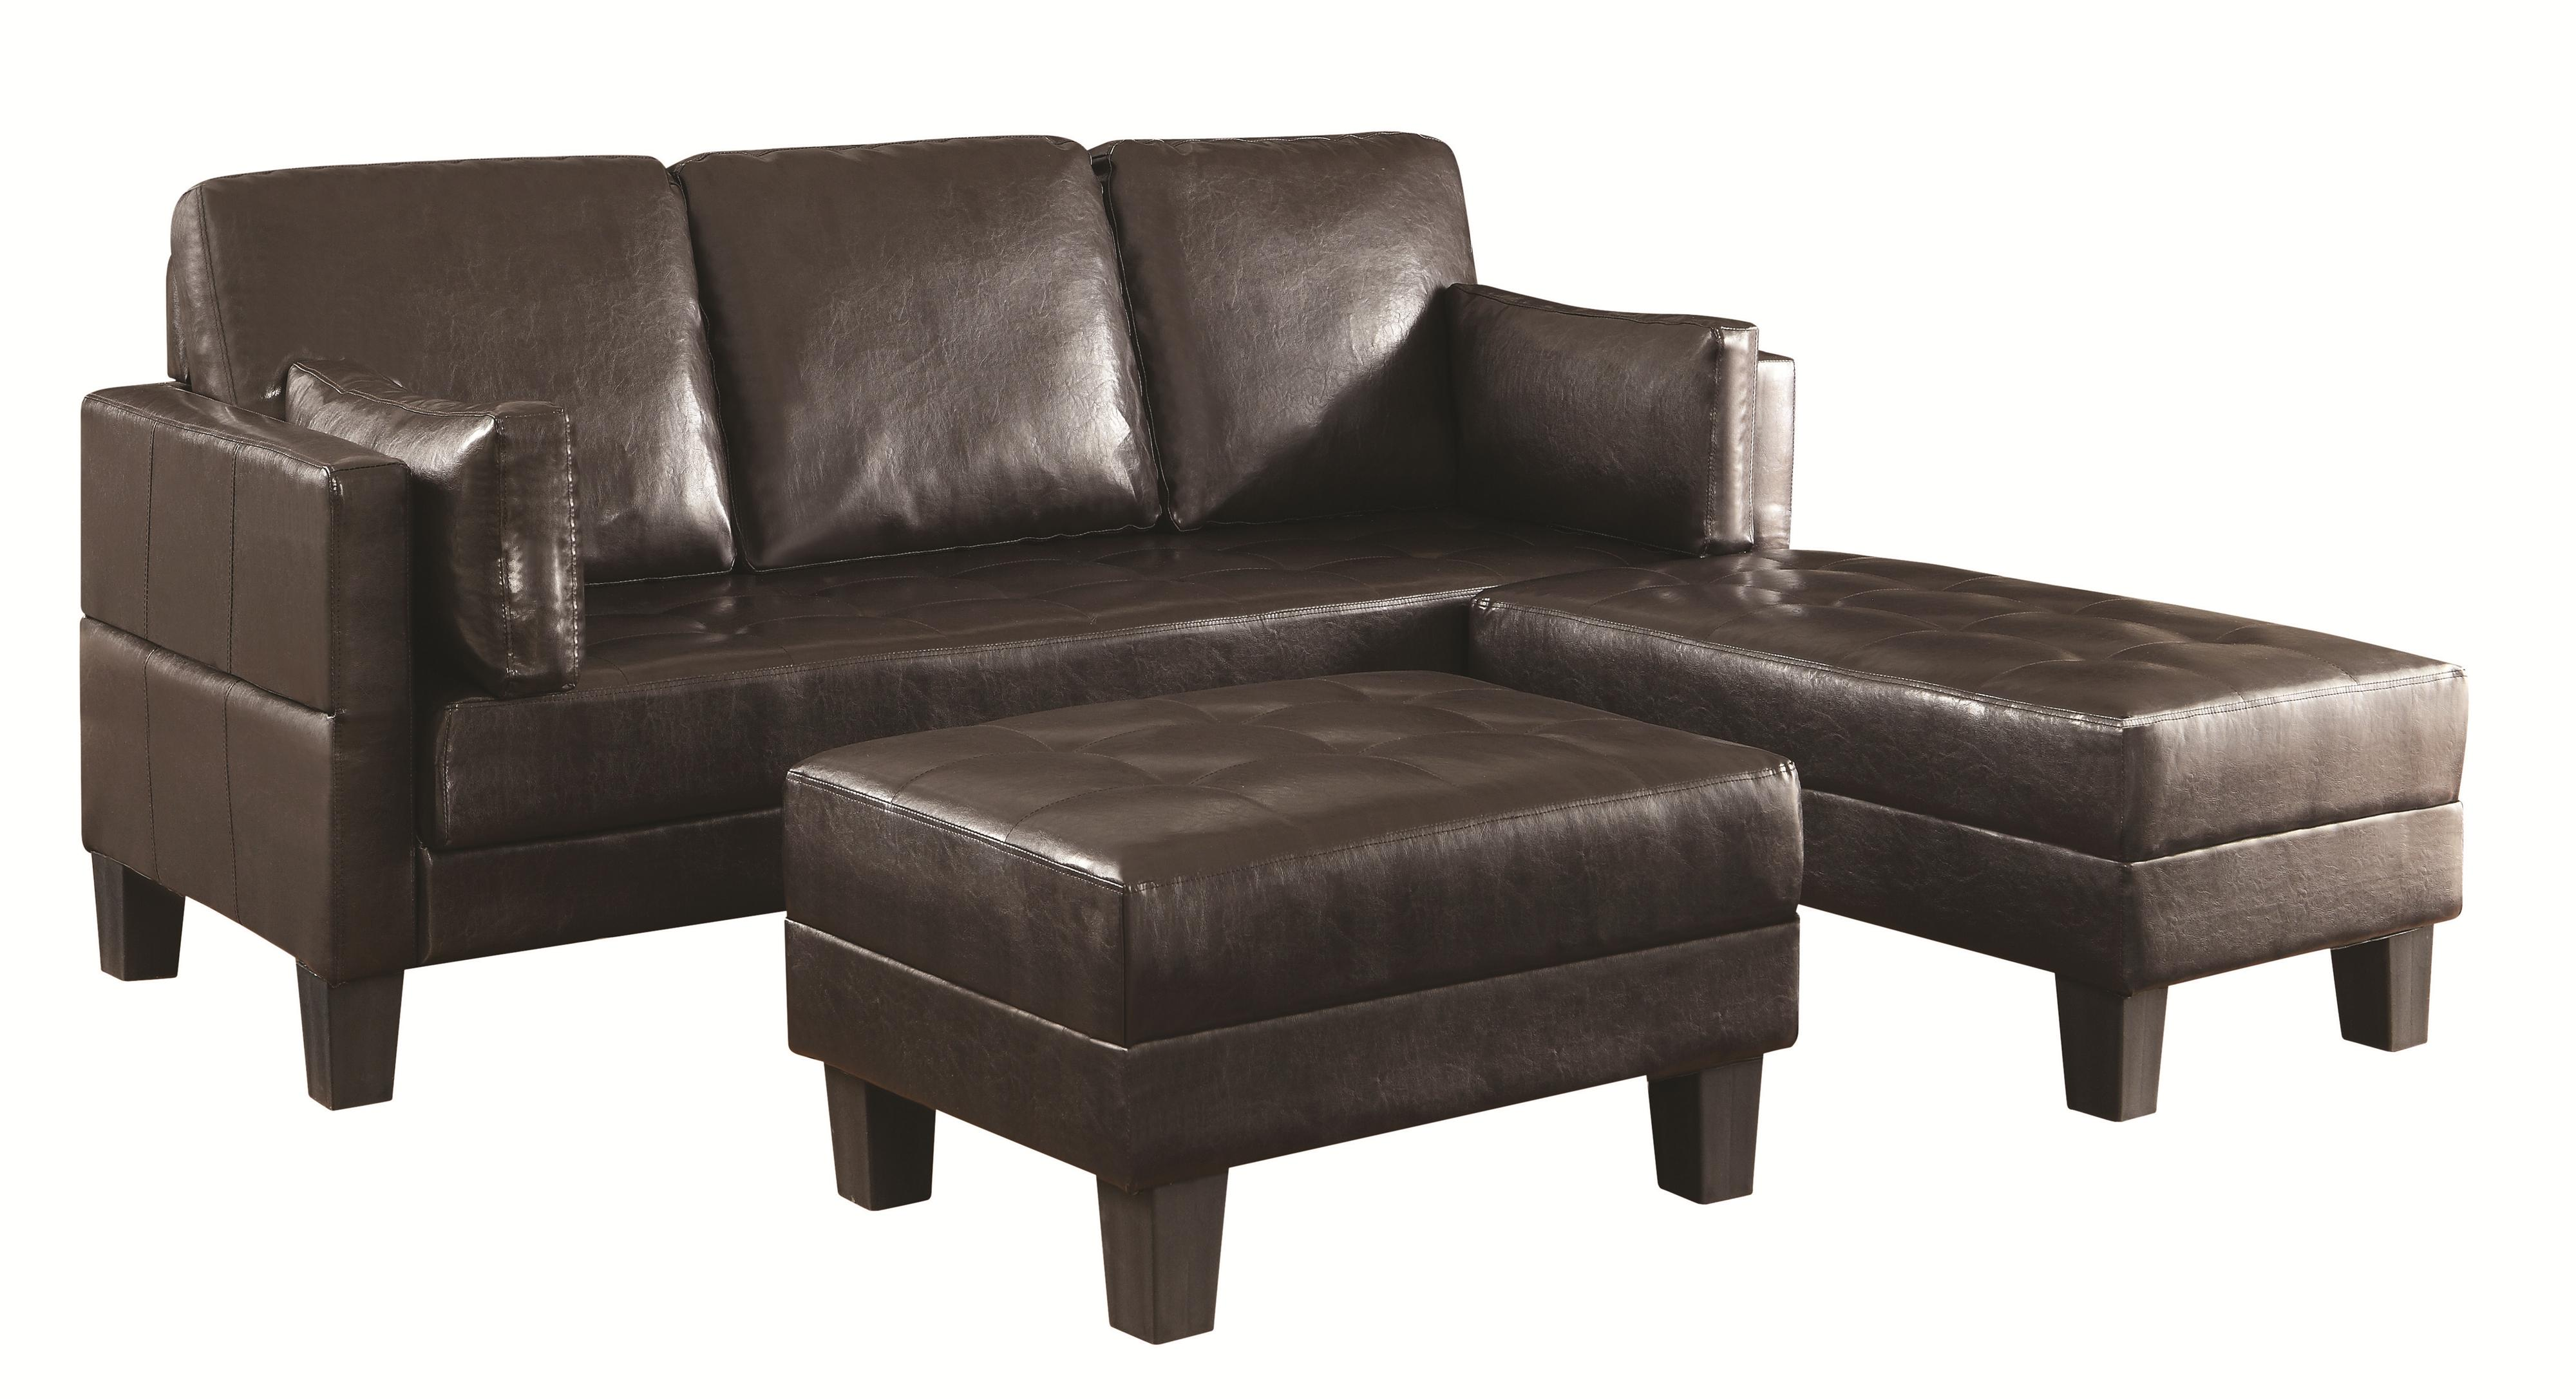 Ellesmere Contemporary Sofa Bed Group With 2 Ottomans Sofa Menzilperde Net